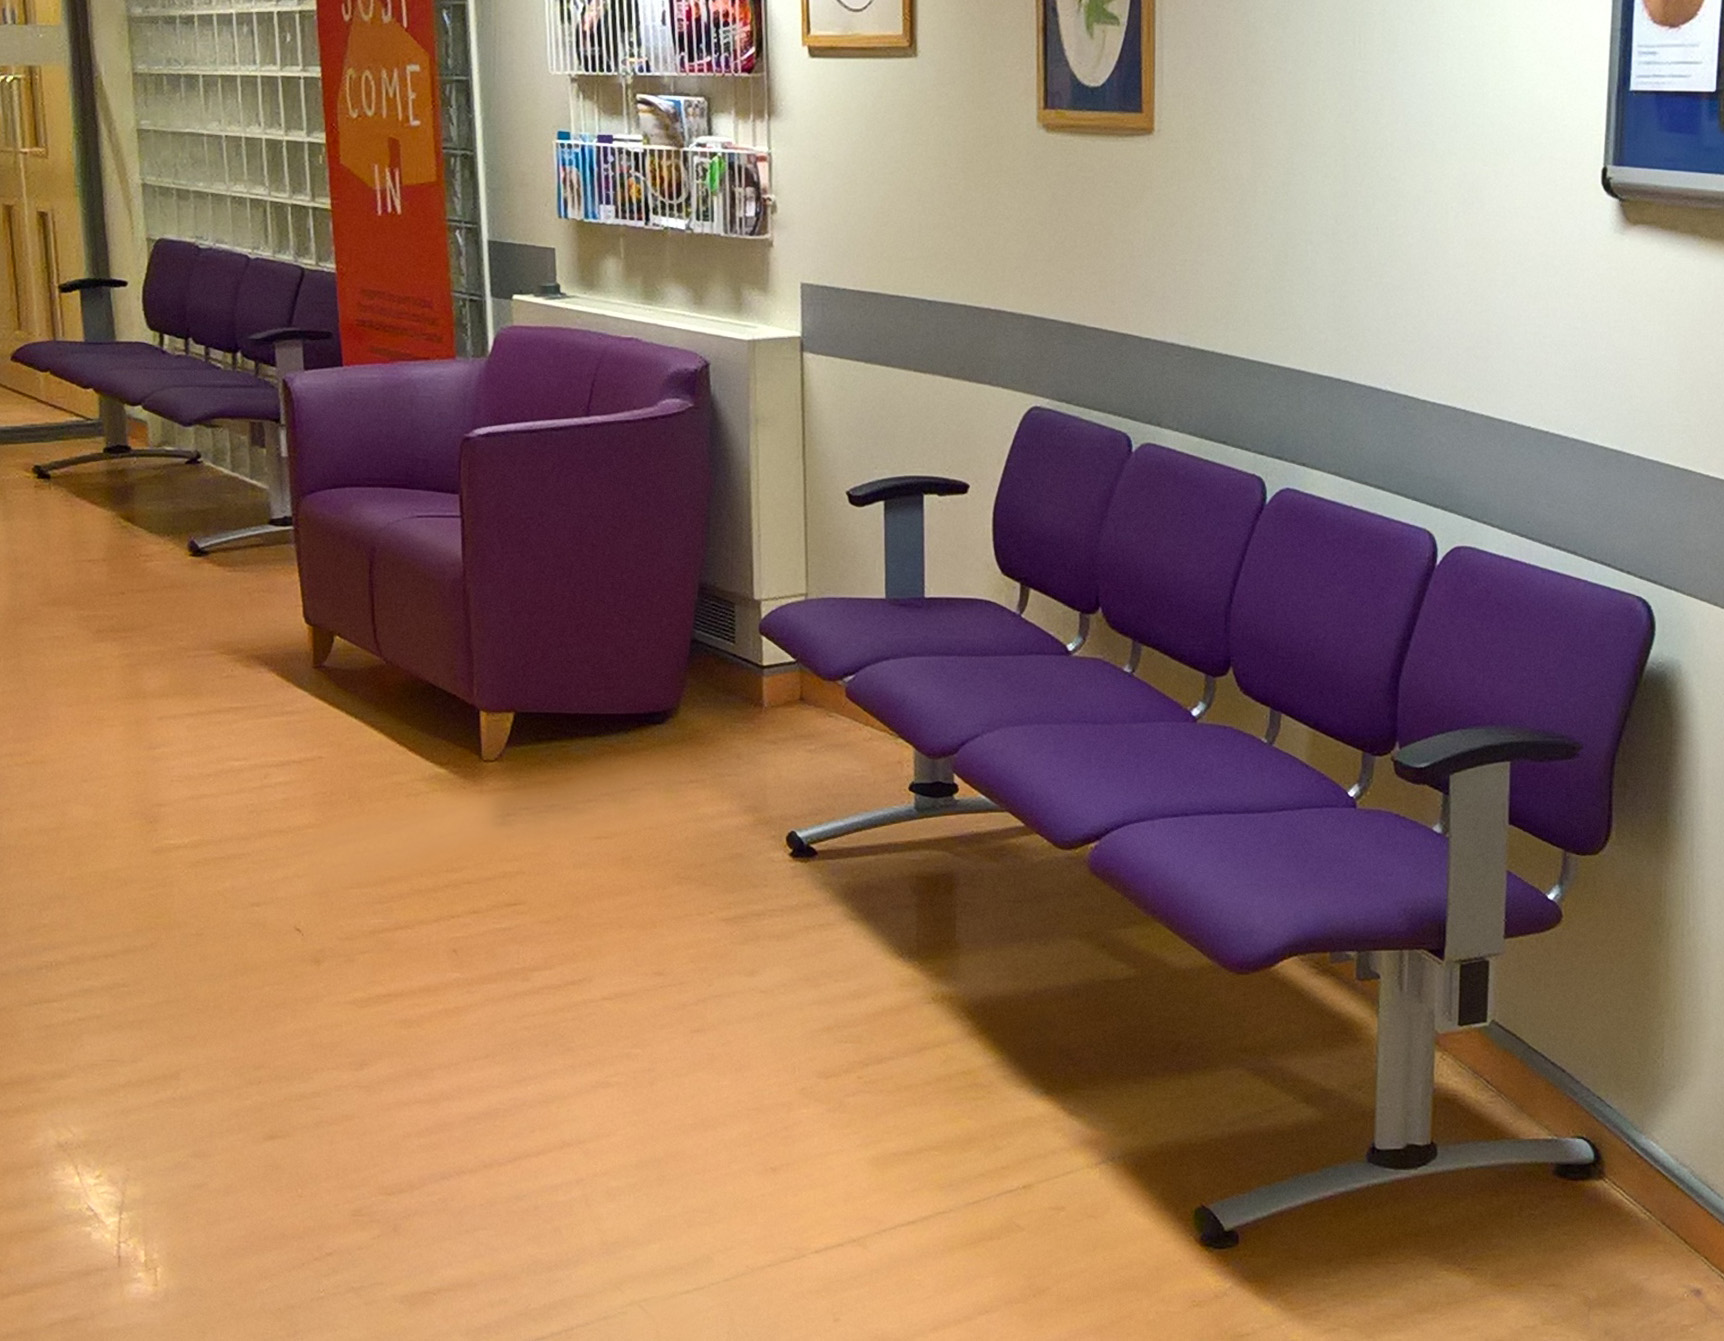 Hospital corridor waiting area with purple 4-seat beam seating and co-ordinating small sofa